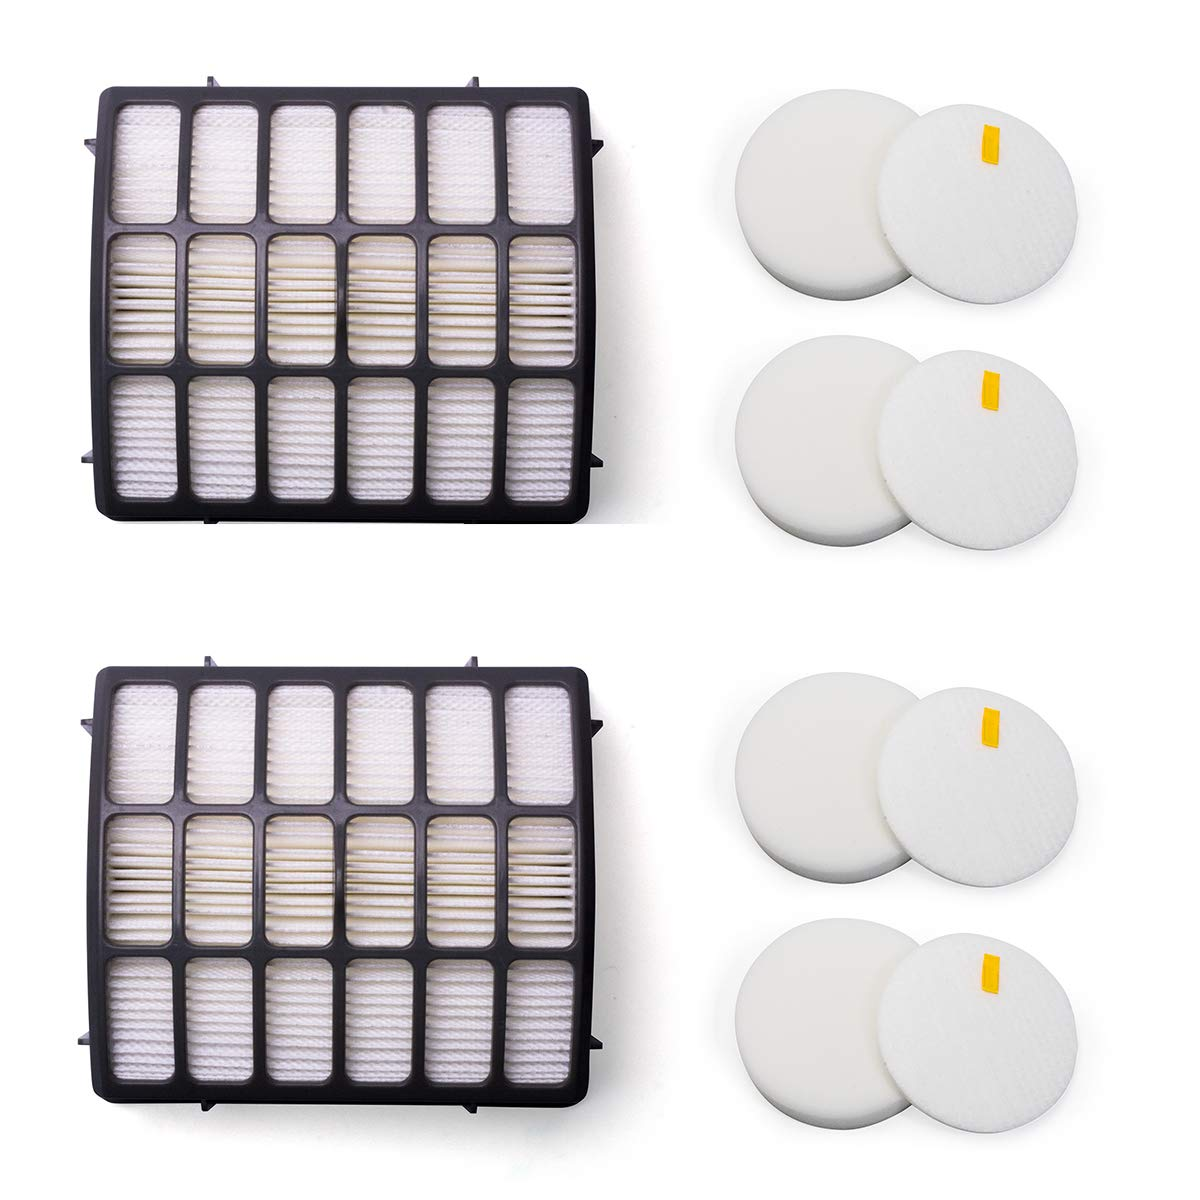 B07X5S6858 Amyehouse Foam & Felt Hepa Filters Replacement Kit for Shark Navigator Professional Upright Vacuum NV70 NV71 NV80 NV90 NV95 NVC80C UV420,Part XHF80 & XFF80 61BOcjRu4oL